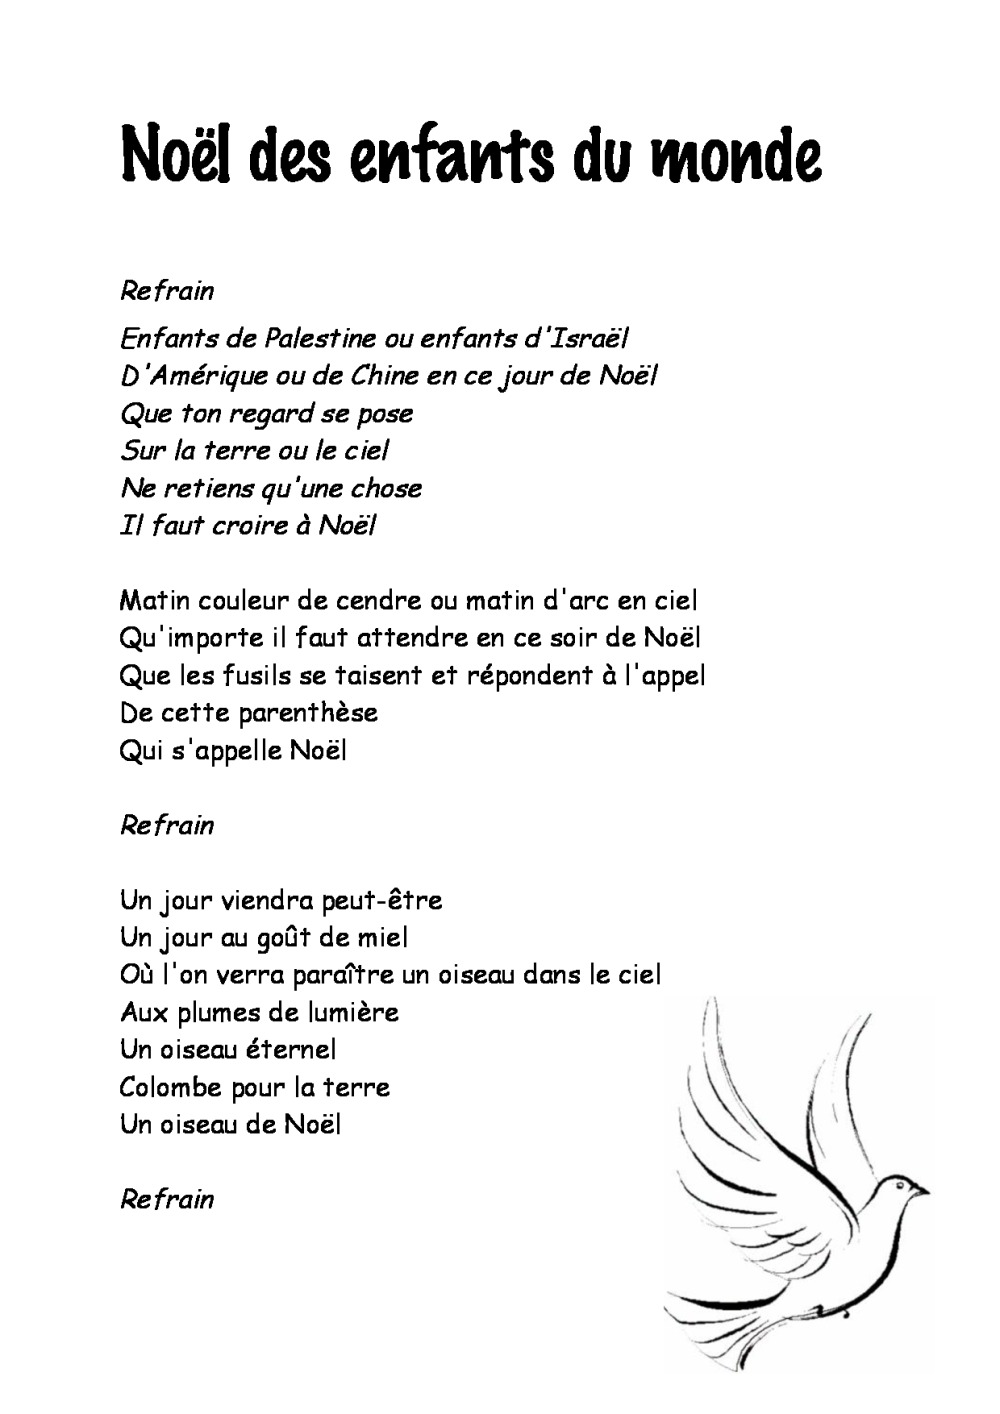 Paroles chansons de no l bdrp - Noel enfant du monde ...